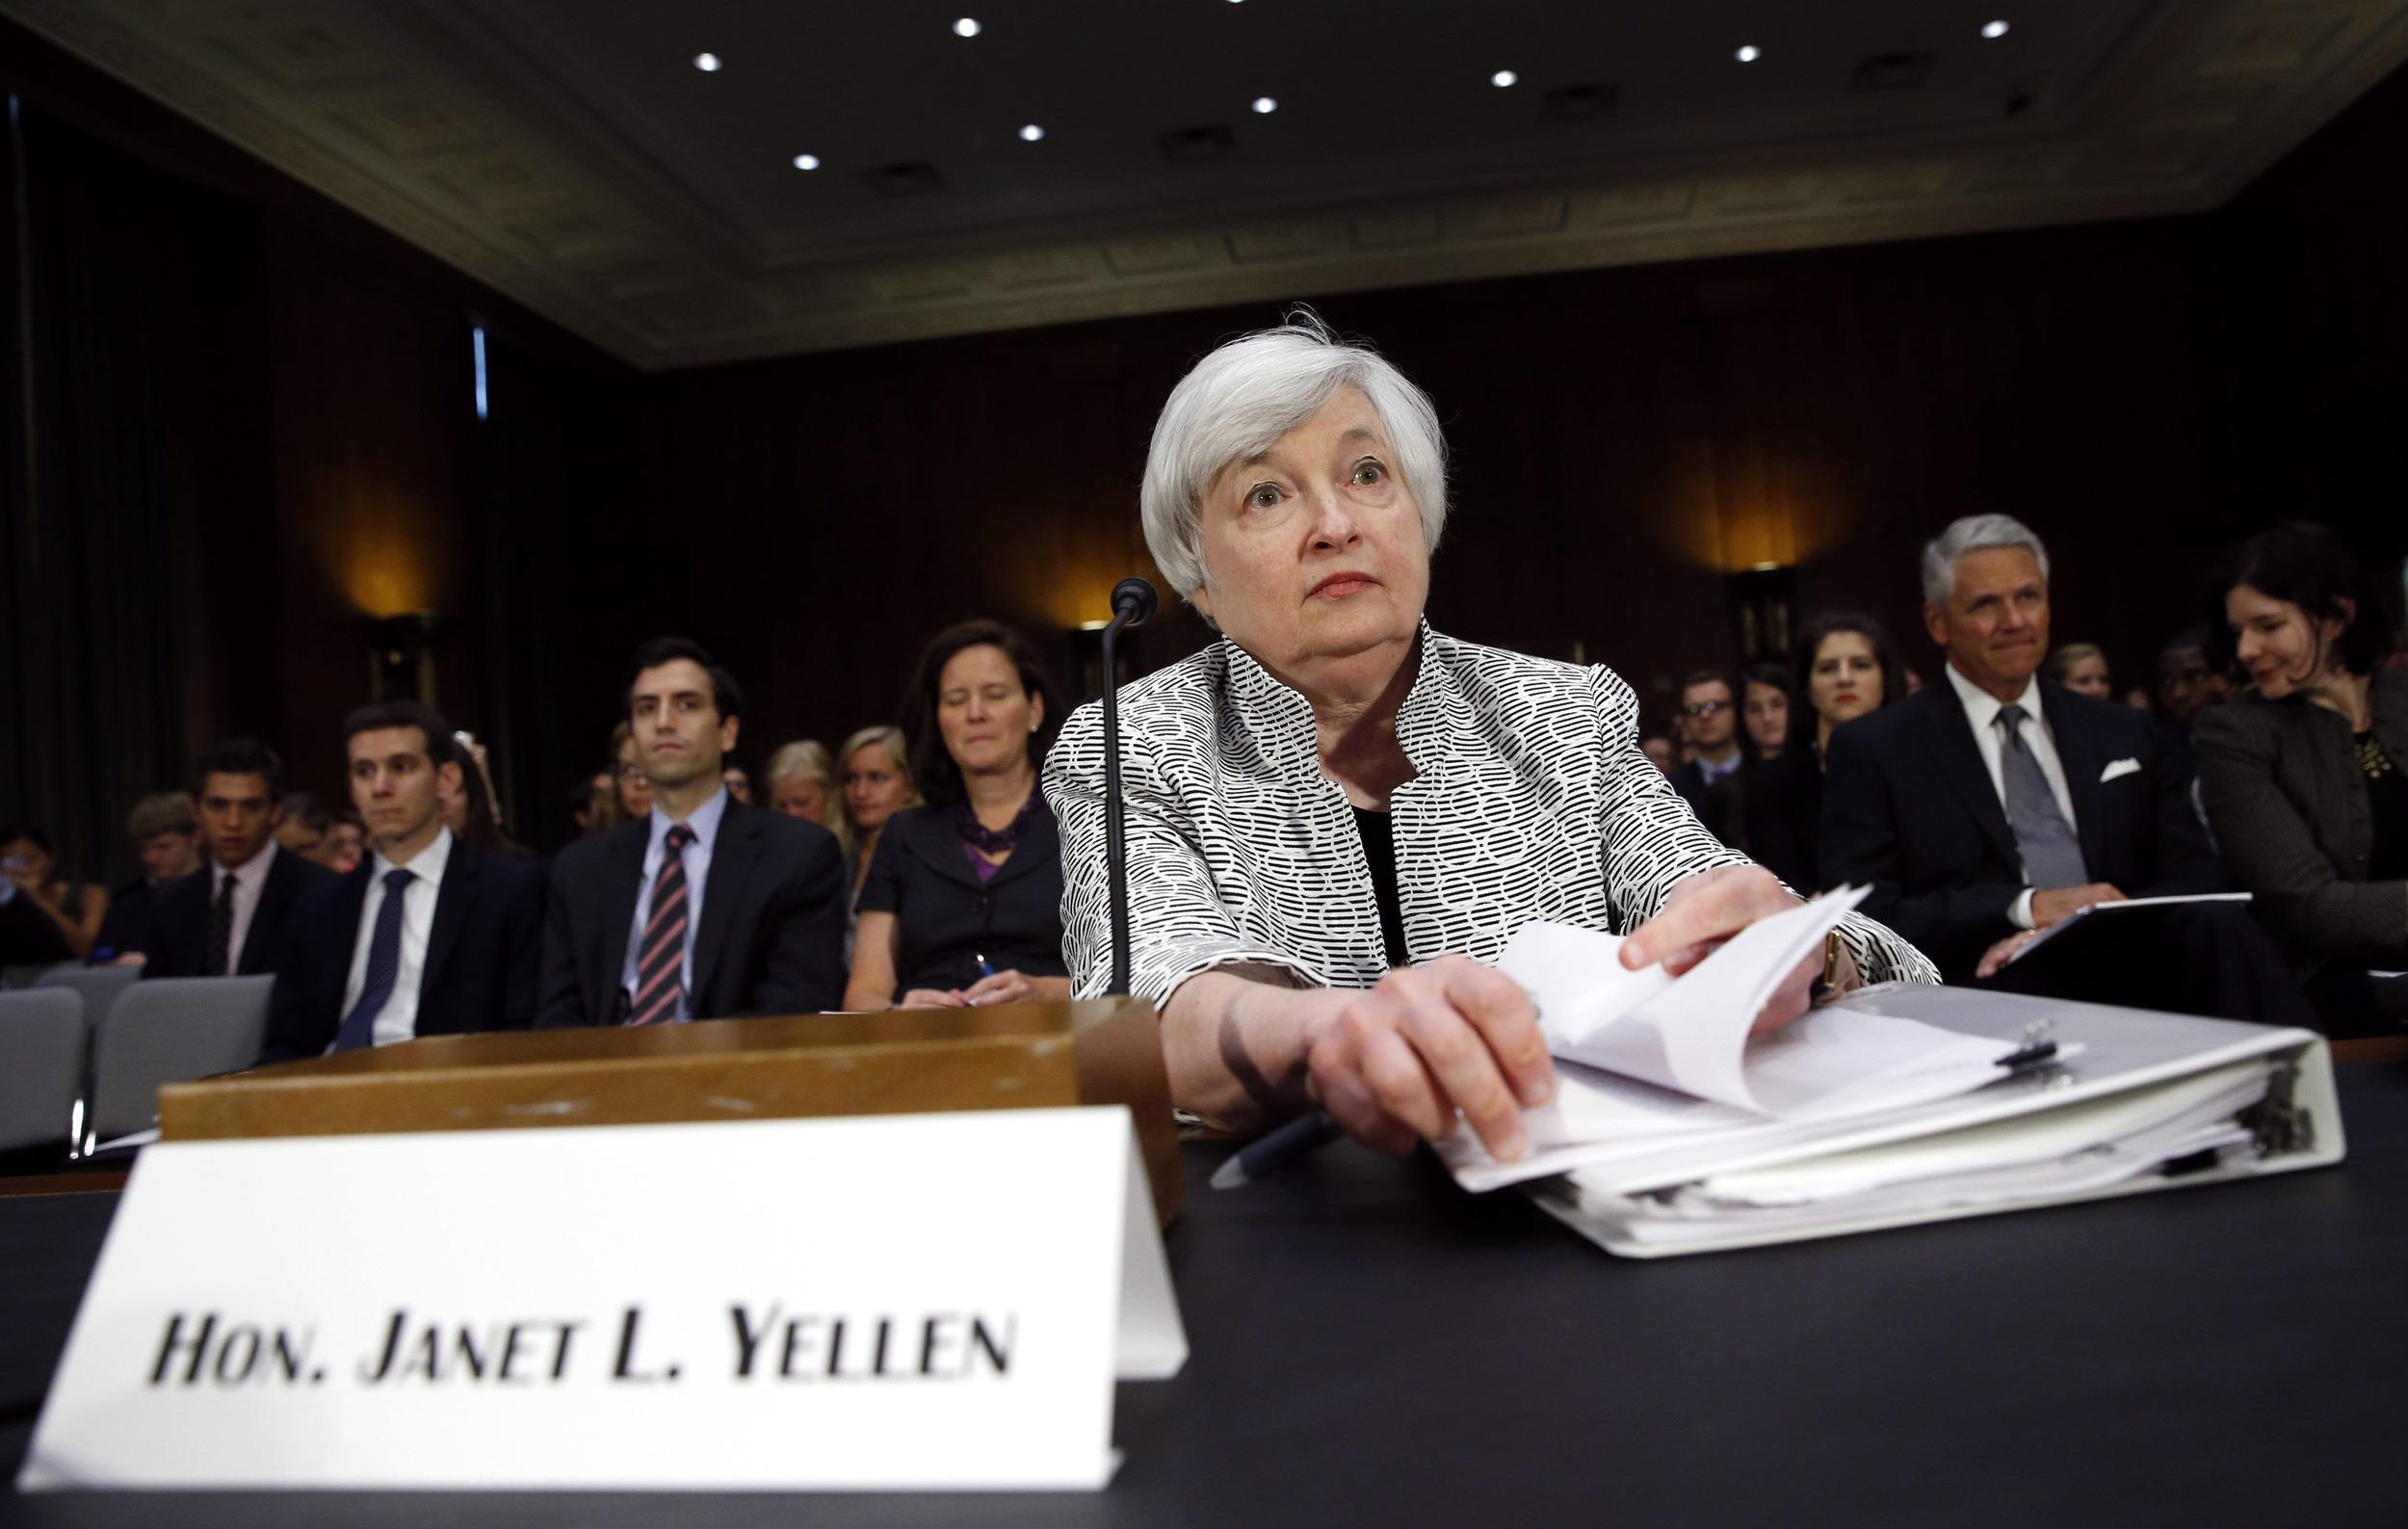 Federal Reserve Chair Janet Yellen testifies before the Senate Banking Committee on Capitol Hill in Washington July 15, 2014.